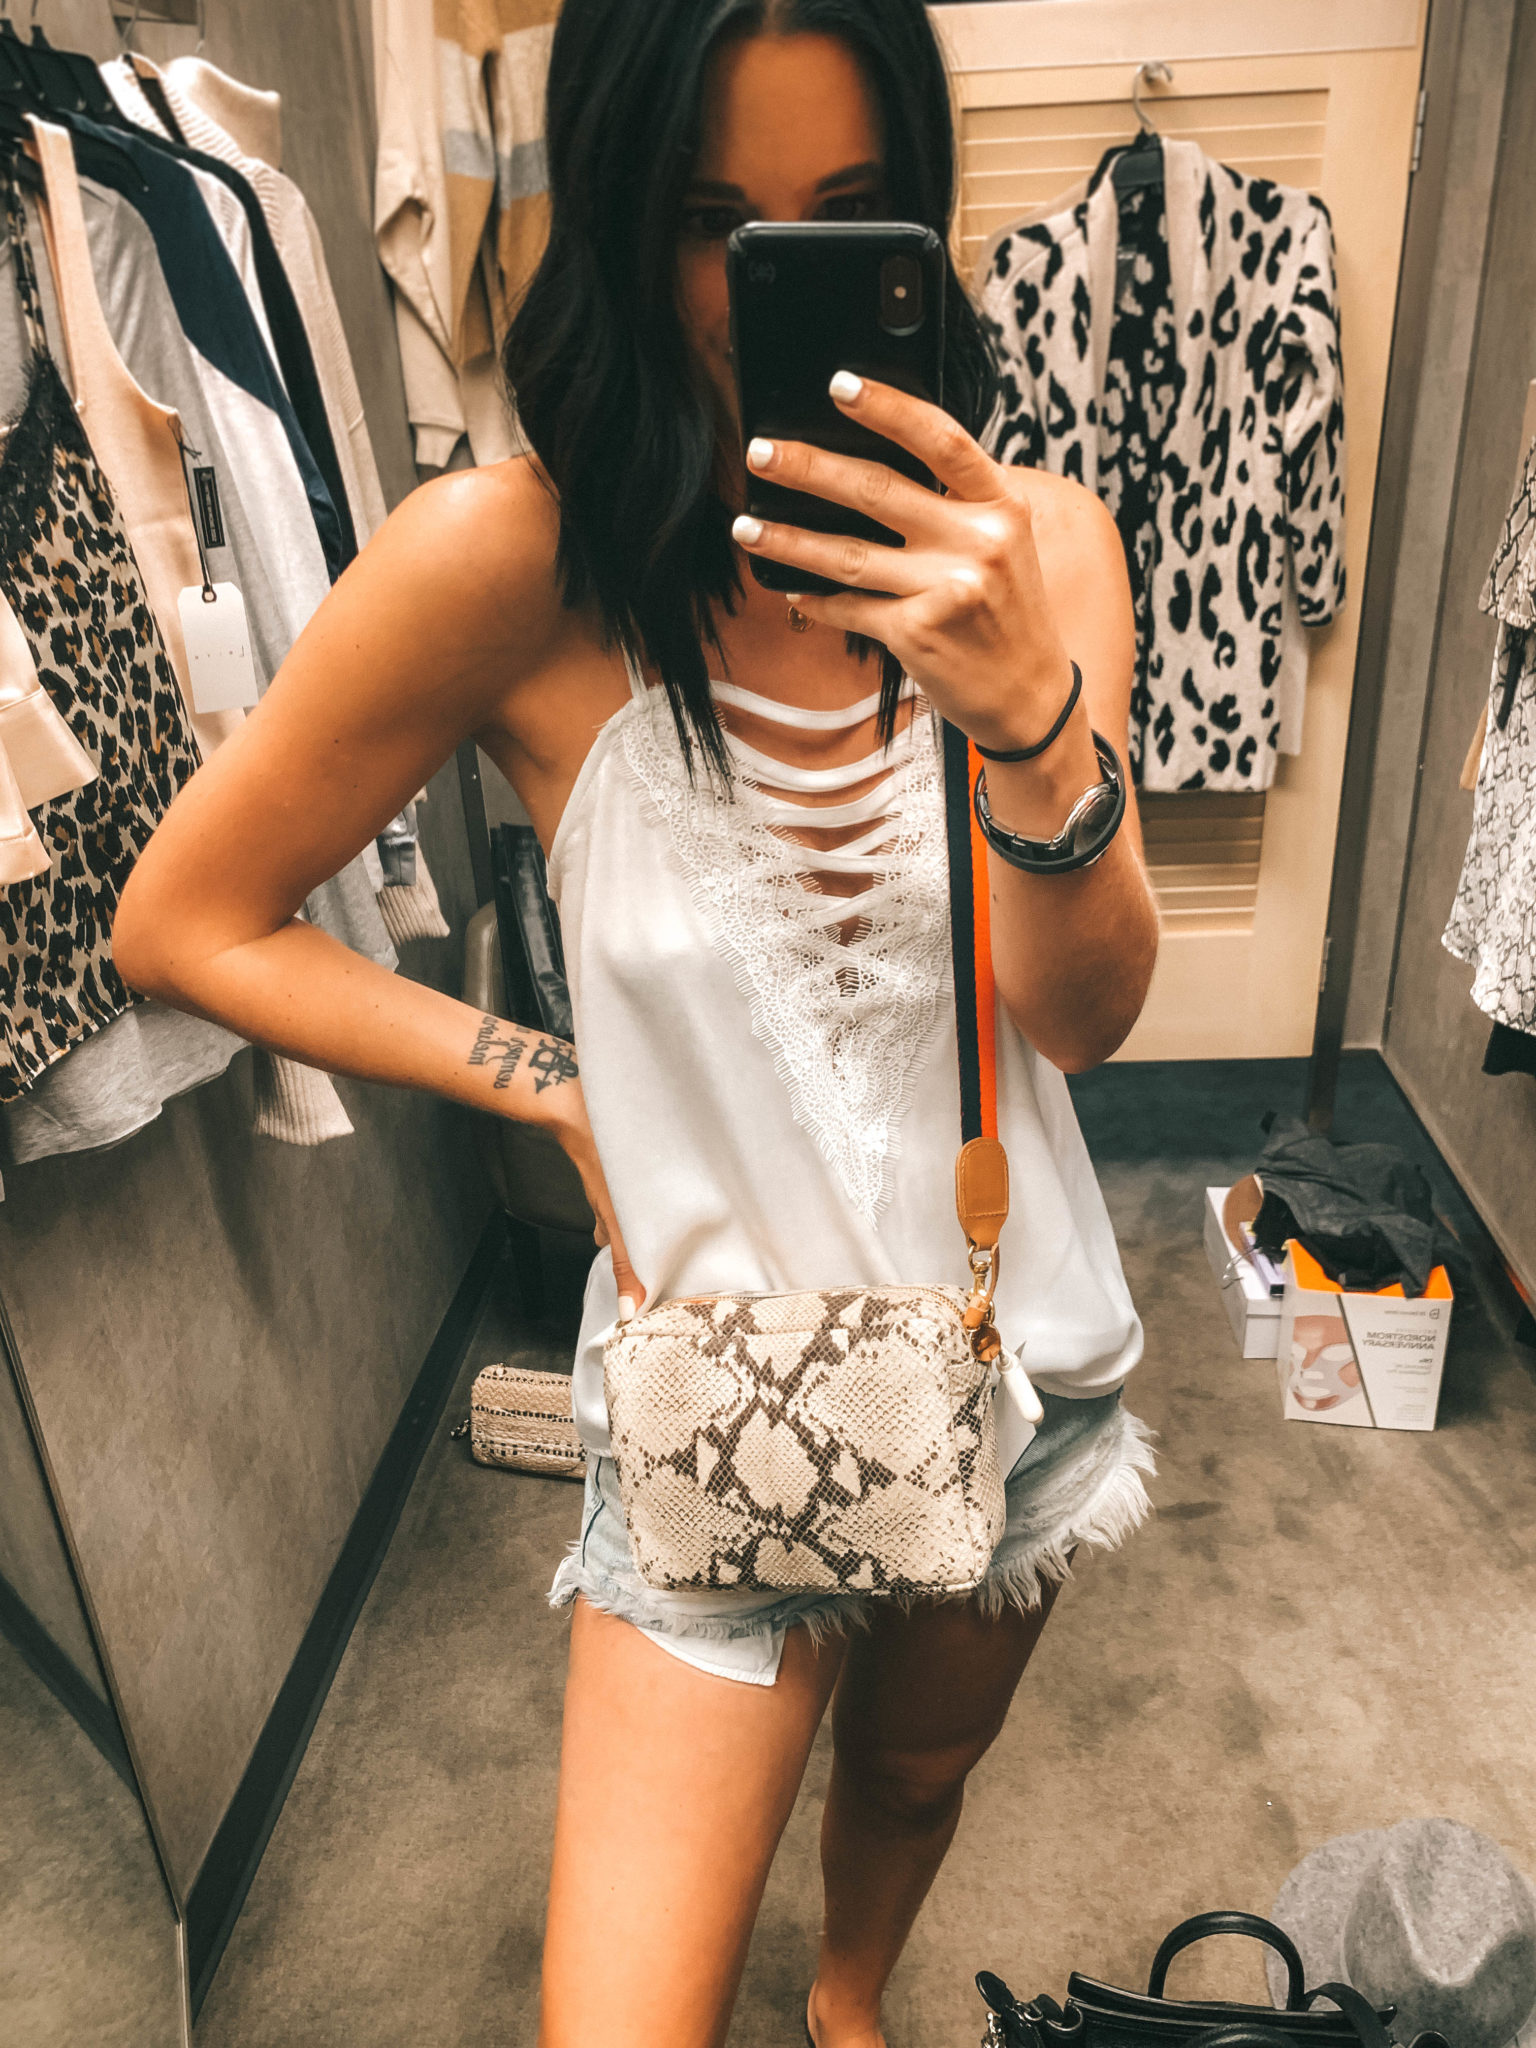 Top 11 Must Have Pieces from the Nordstrom Anniversary Sale by popular Austin fashion blog, Dressed to Kill: image of a woman standing in a Nordstrom Dressing room and wearing a Midi Sac Snakeskin Embossed Leather Crossbody Bag by CLARE V.